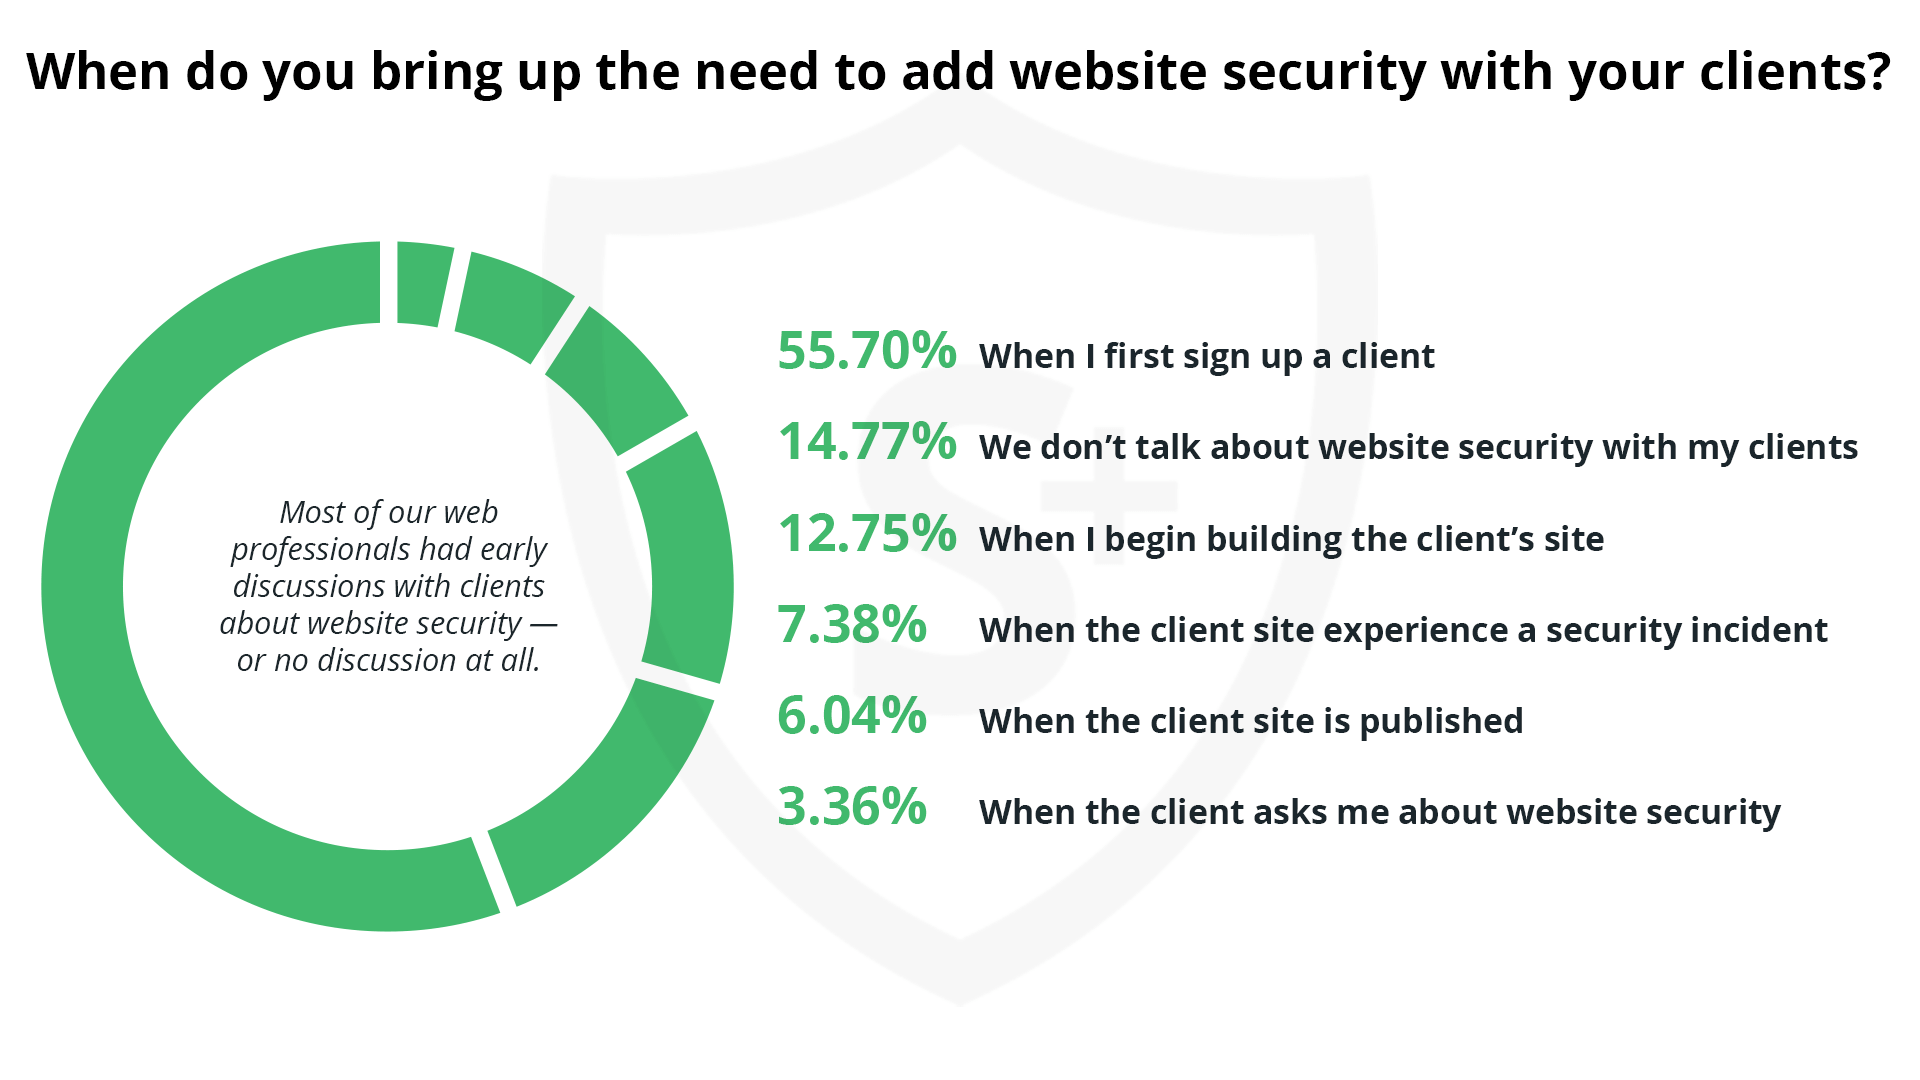 Most of our web professionals had early discussions with clients about website security — or no discussion at all.